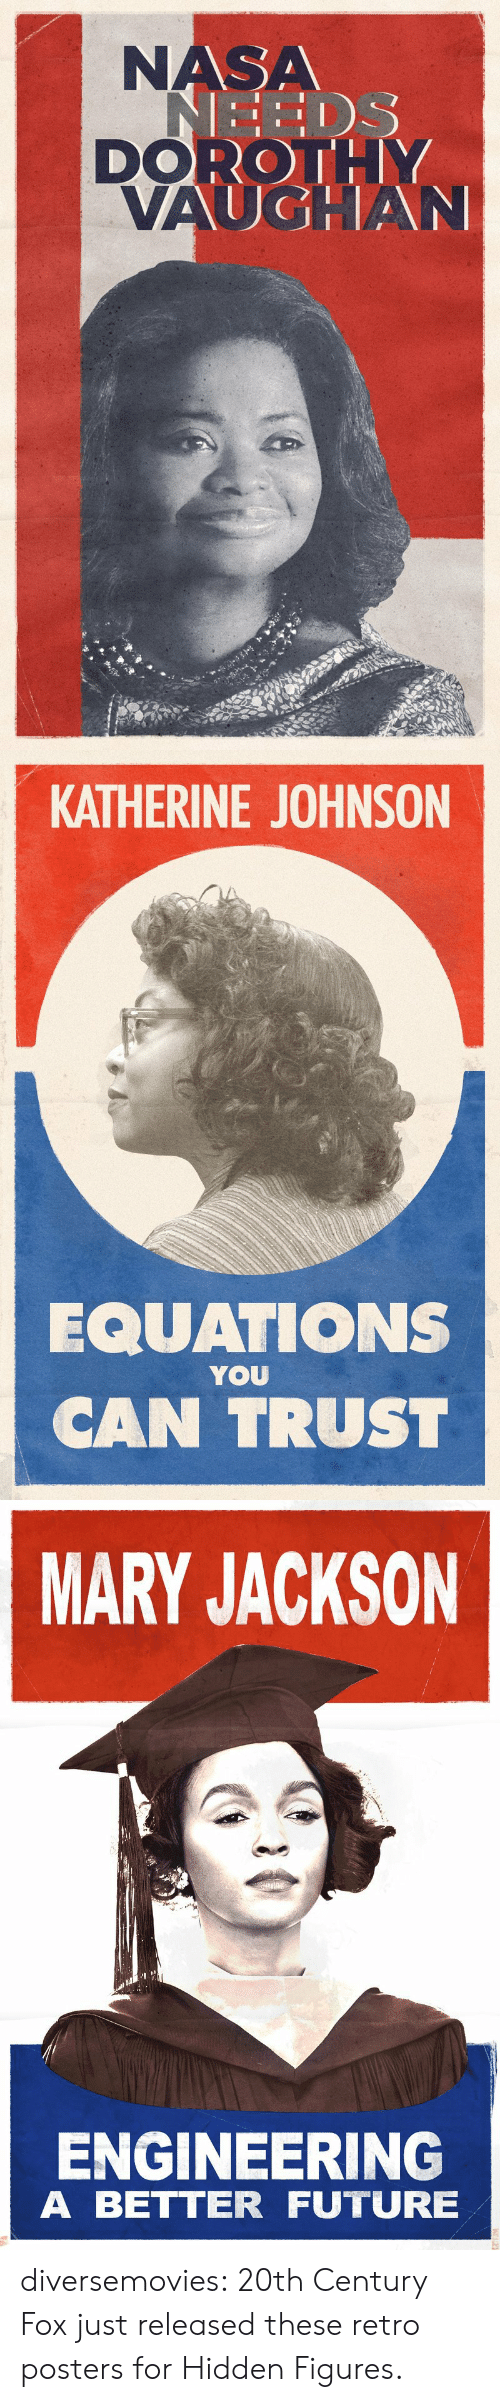 Equations: NASA  DOROTL  EEDS   KATHERINE JOHNSON  EQUATIONS  CAN TRUST  YOU   MARY JACKSON  址  ENGINEERING  A BETTER FUTURE diversemovies:  20th Century Fox just released these retro posters for Hidden Figures.